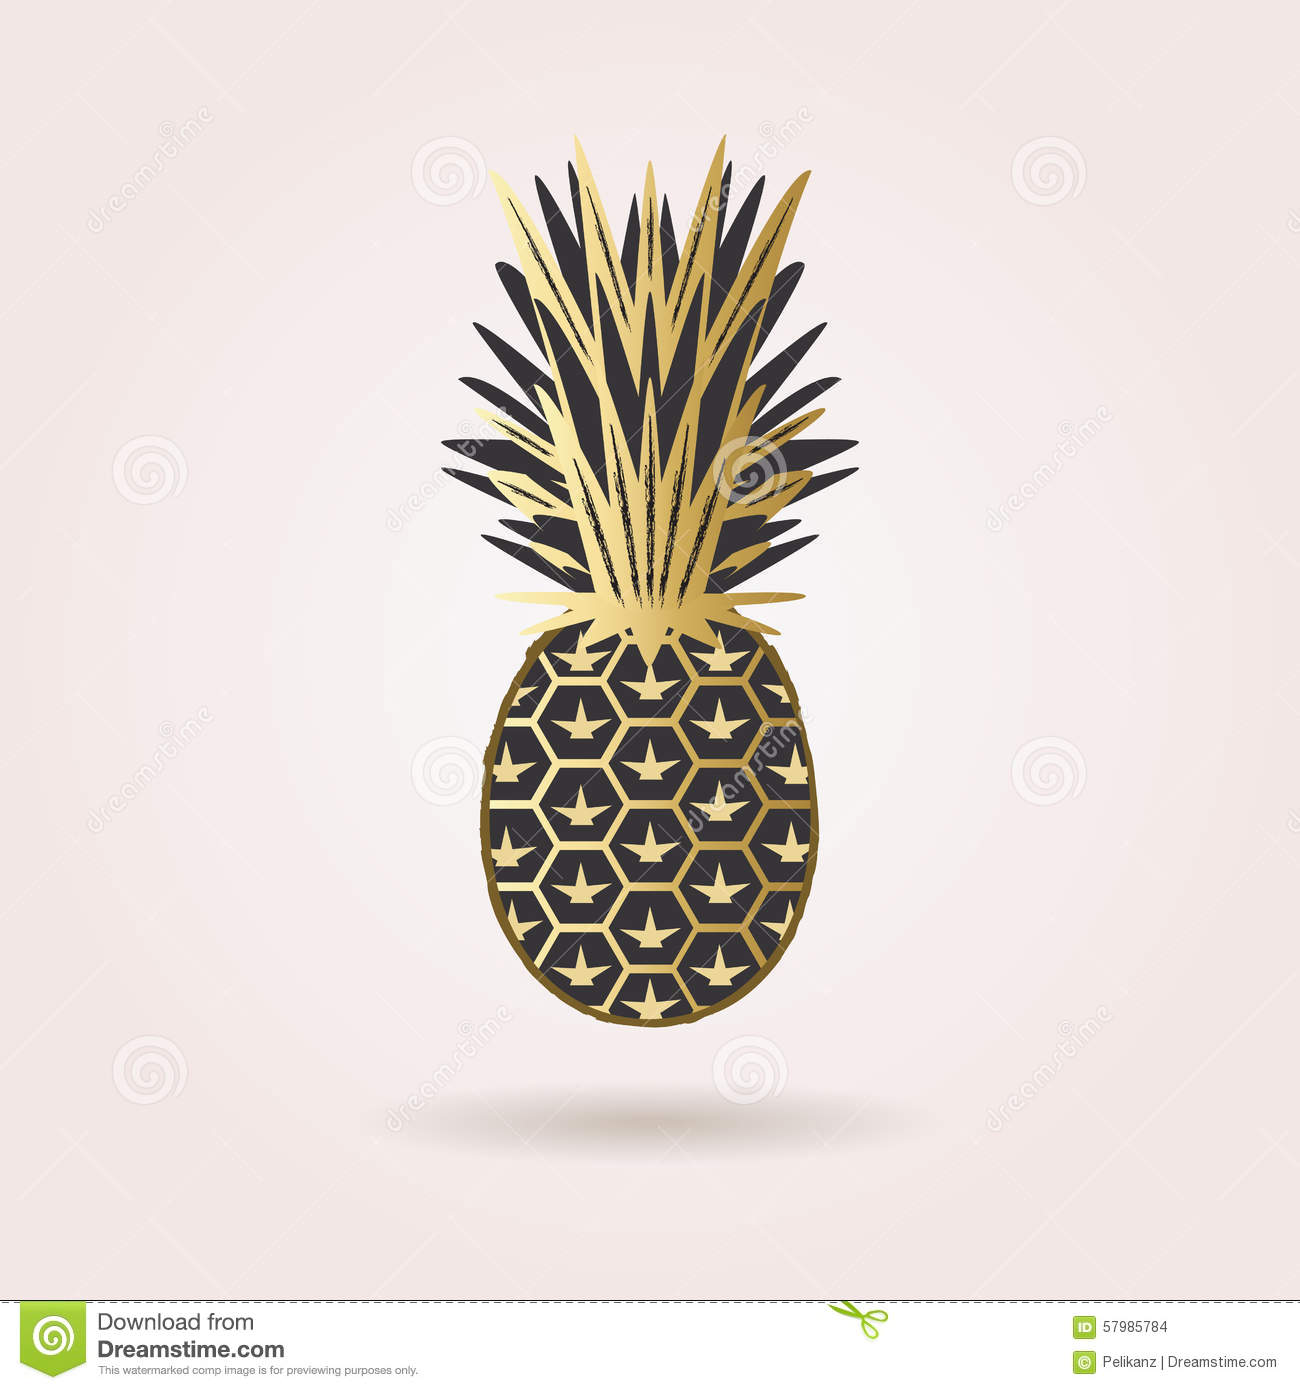 single black golden abstract pineapple icon dropped shadow pink gradient background 57985784